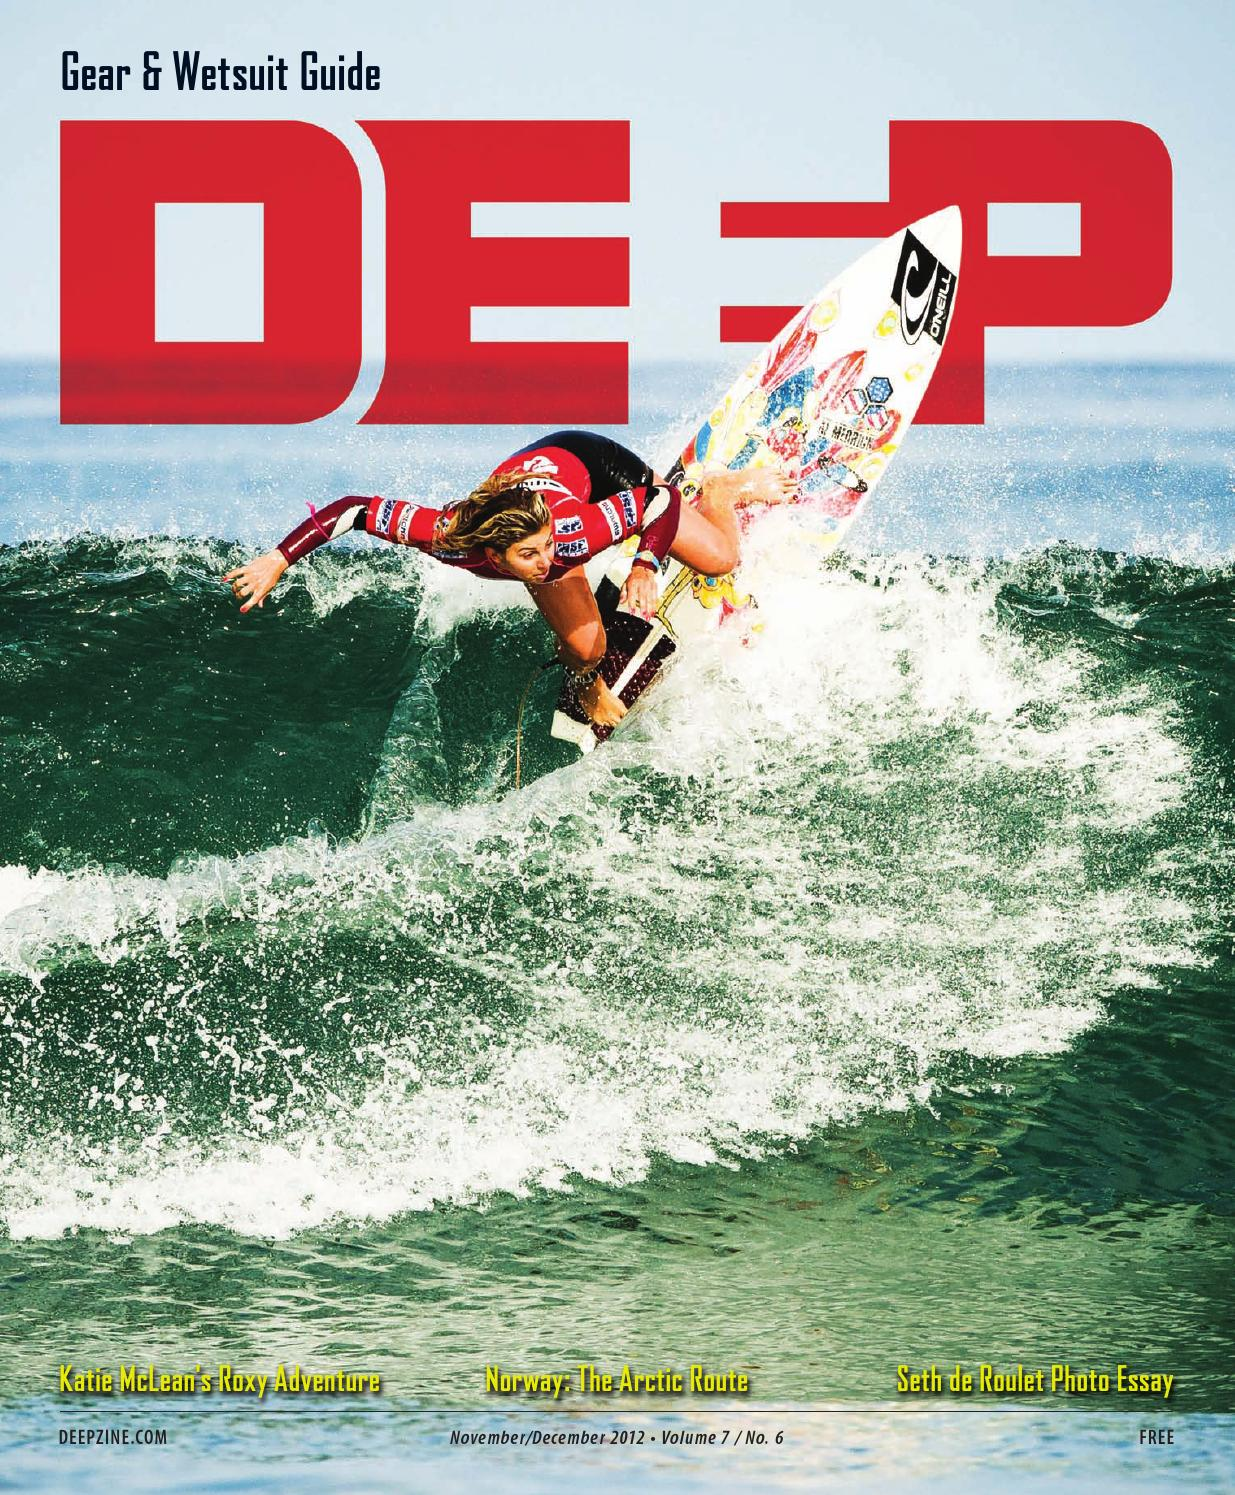 87a4d2ae0f DEEP Surf Magazine—bv7, Issue 6_November/December 2012 Gear & Wetsuit Guide  by DEEP Surf Magazine - issuu